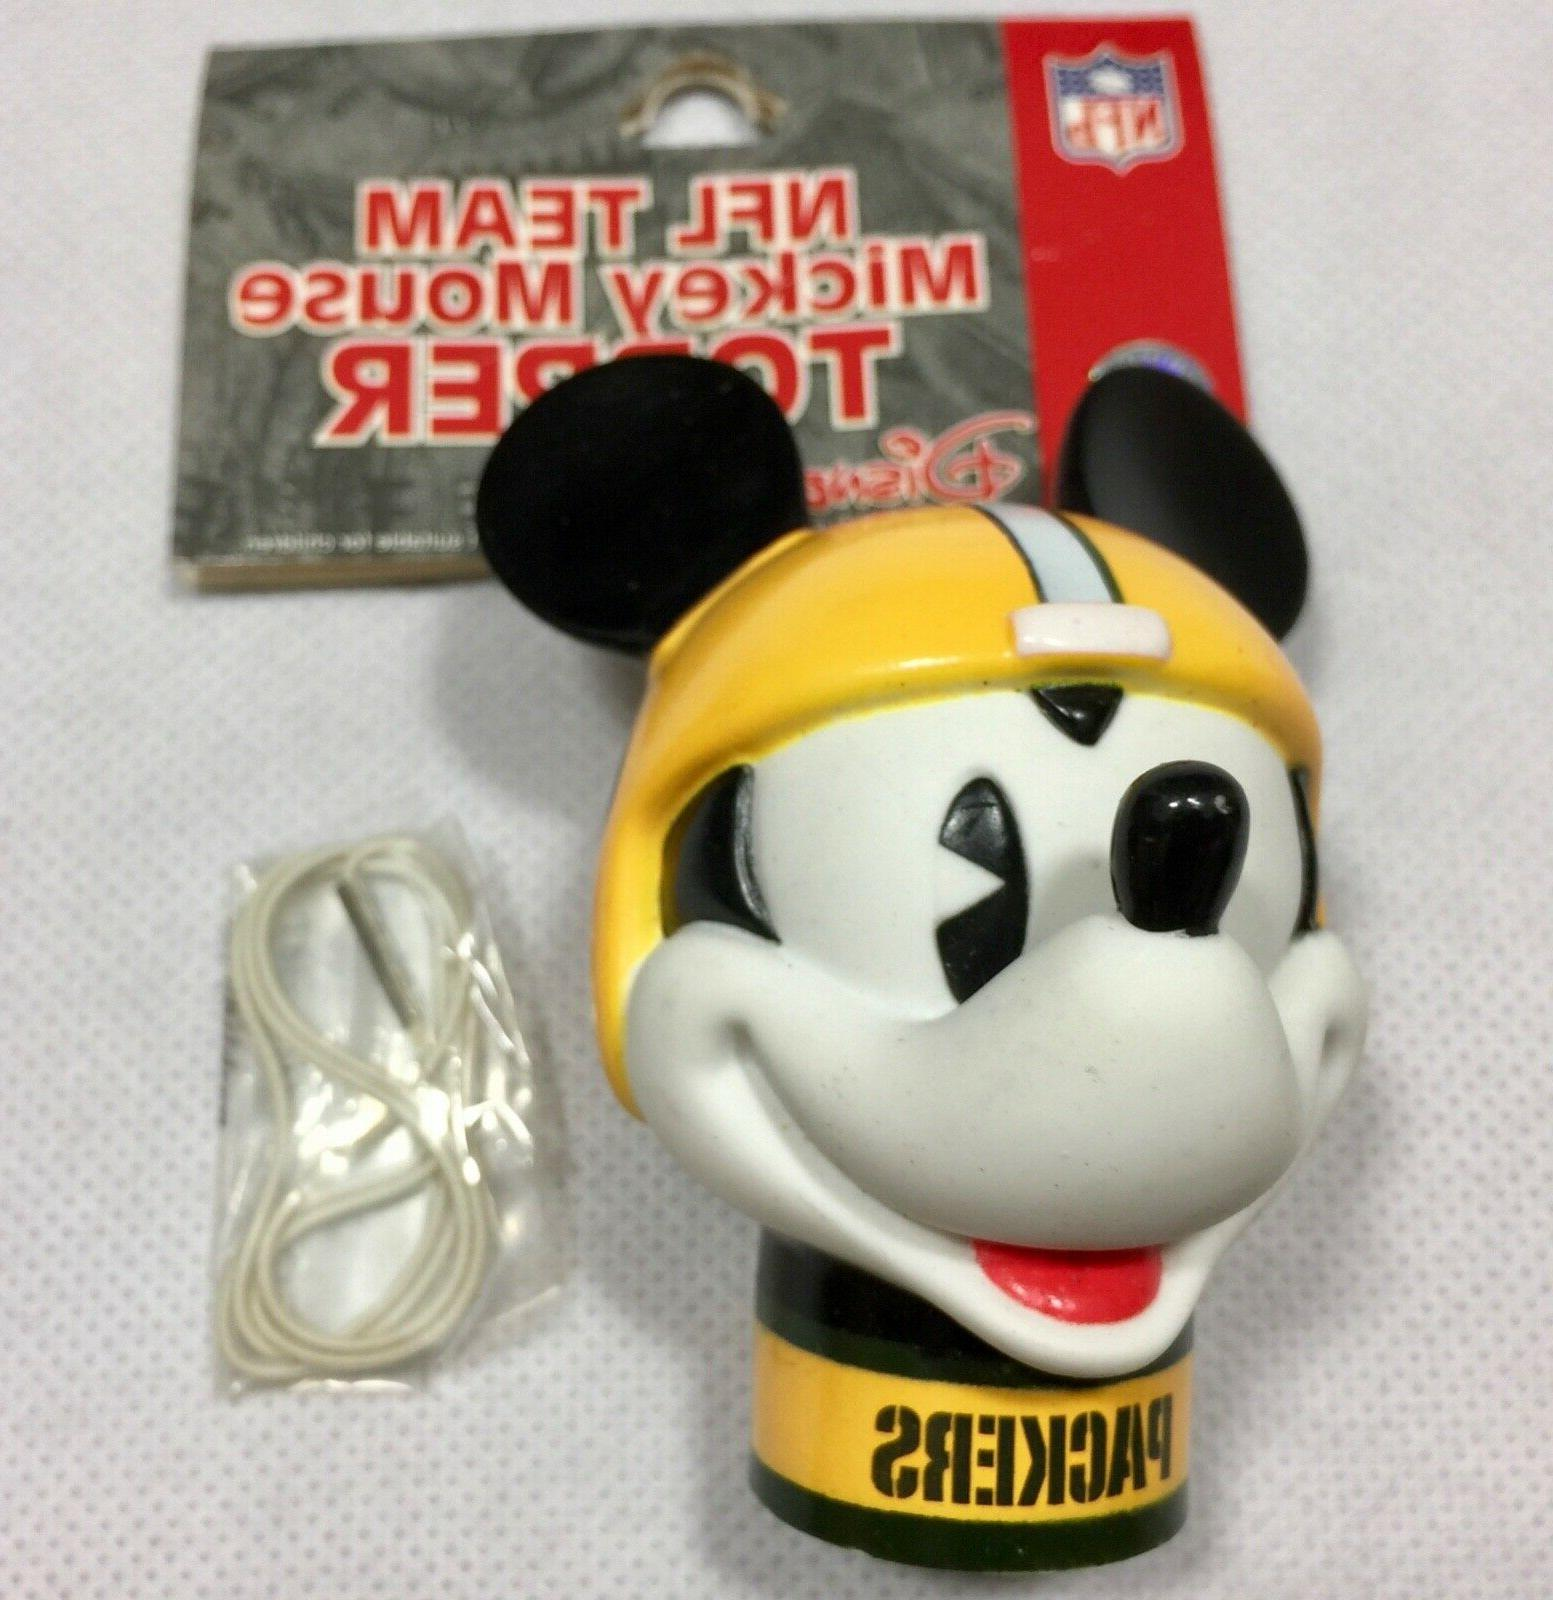 nfl green bay packers mickey mouse antenna